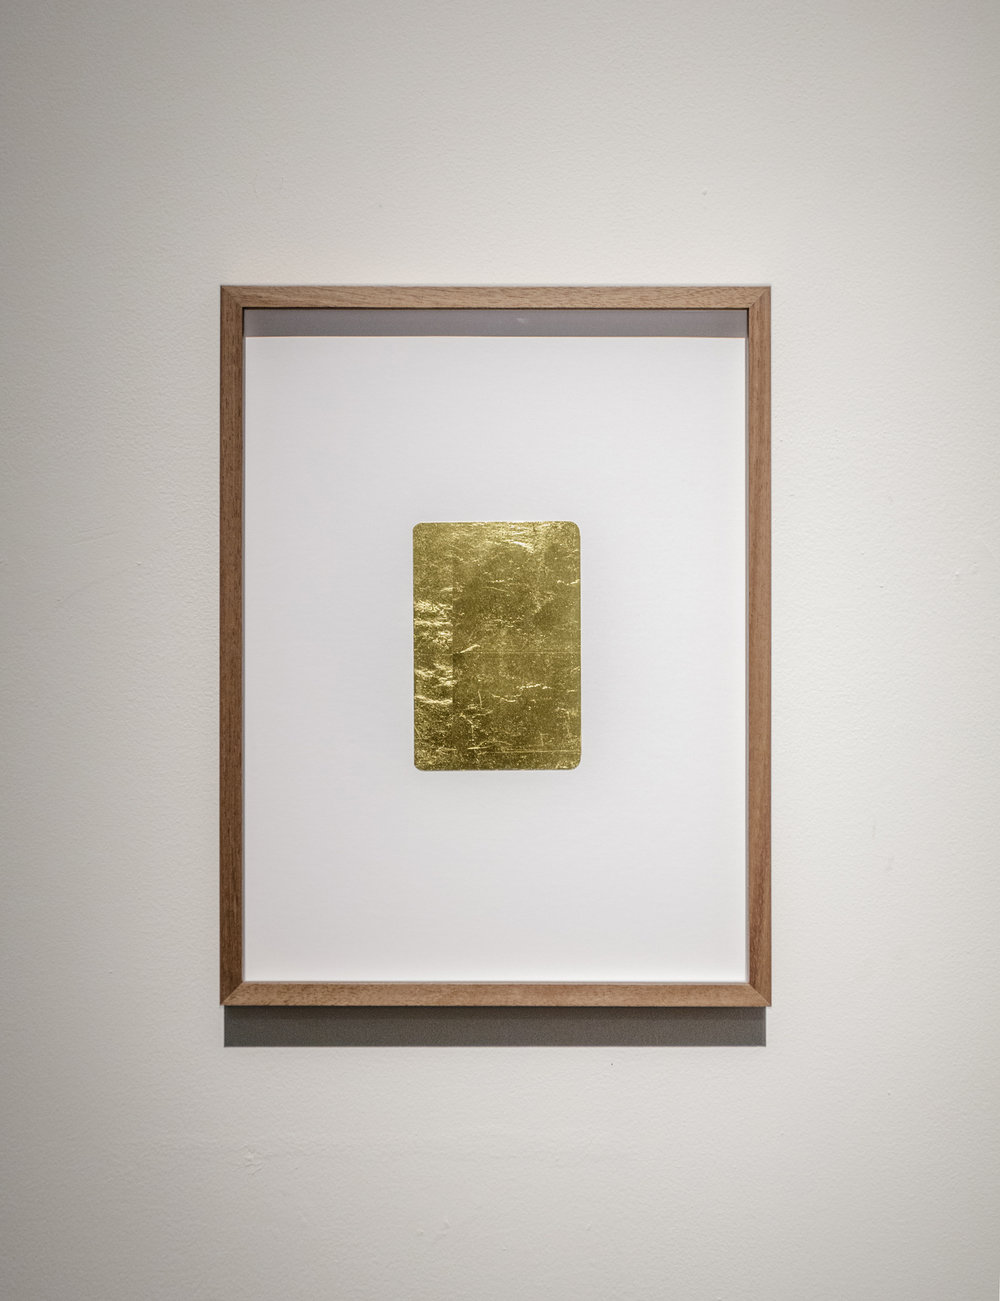 Stéphanie Saadé  Golden Memories 2015 Old photograph, gold leaf 10 x 14.5 cm